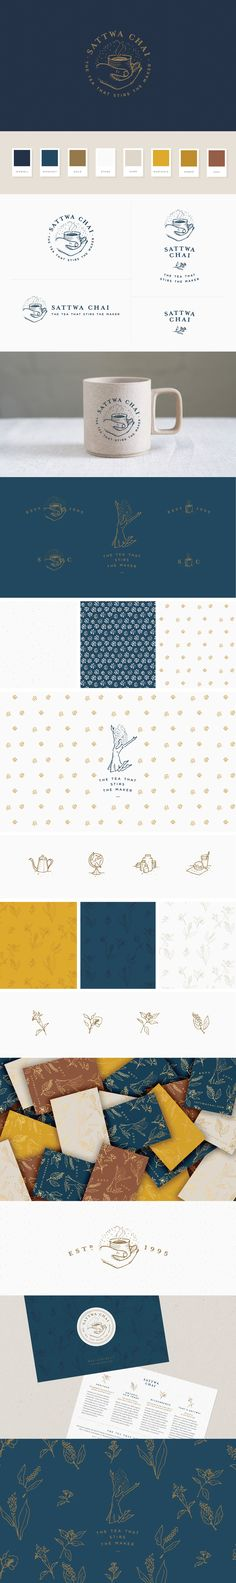 Sattwa Chai - logo & brand identity design crafted by Melissa Yeager